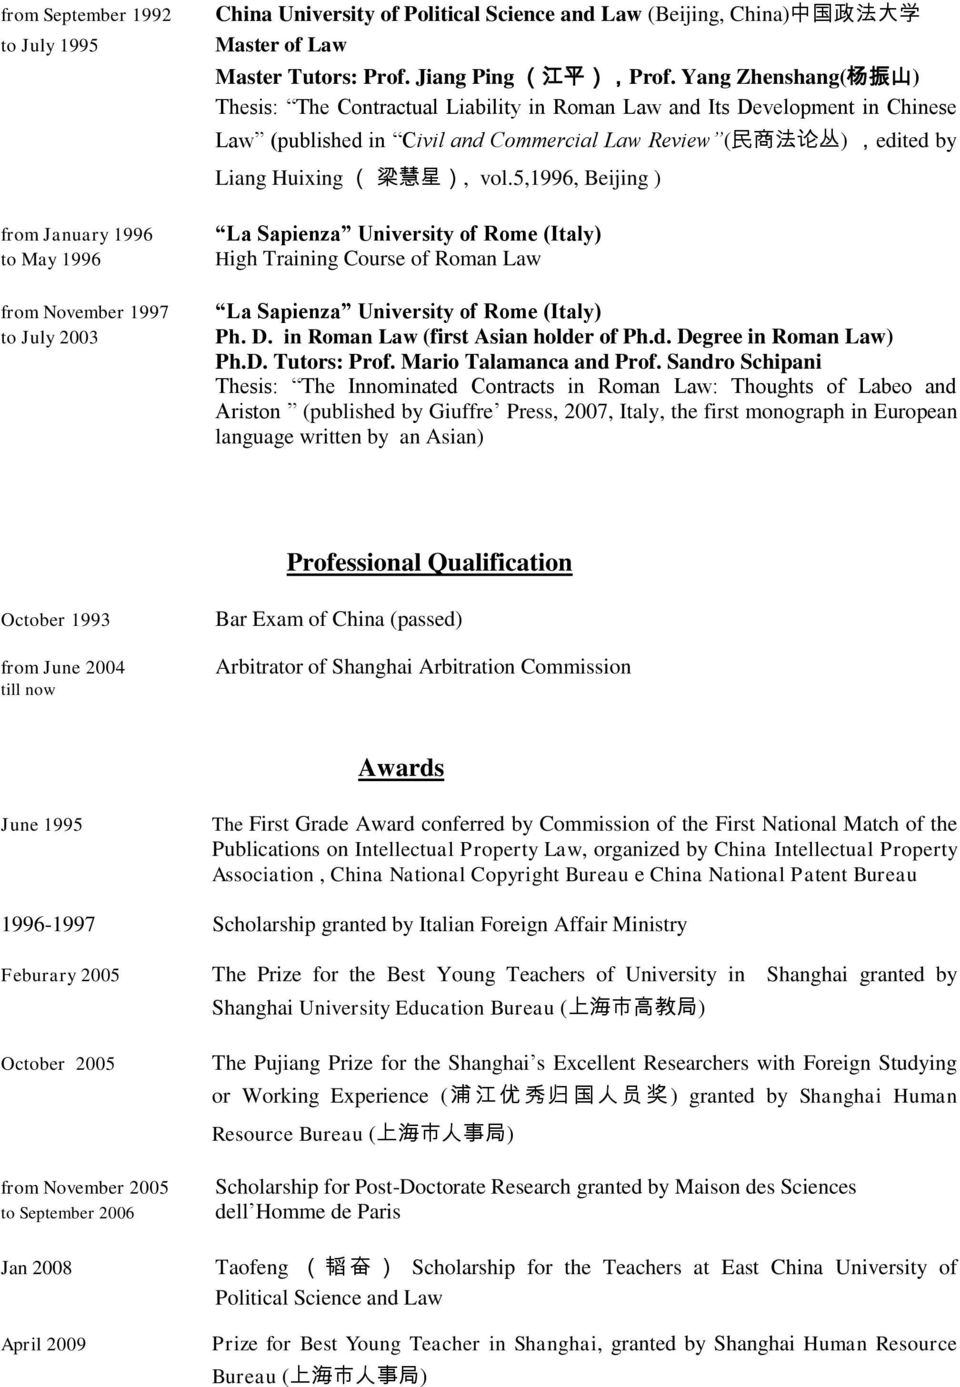 Yang Zhenshang( 杨 振 山 ) Thesis: The Contractual Liability in Roman Law and Its Development in Chinese Law (published in Civil and Commercial Law Review ( 民 商 法 论 丛 ),edited by Liang Huixing ( 梁 慧 星